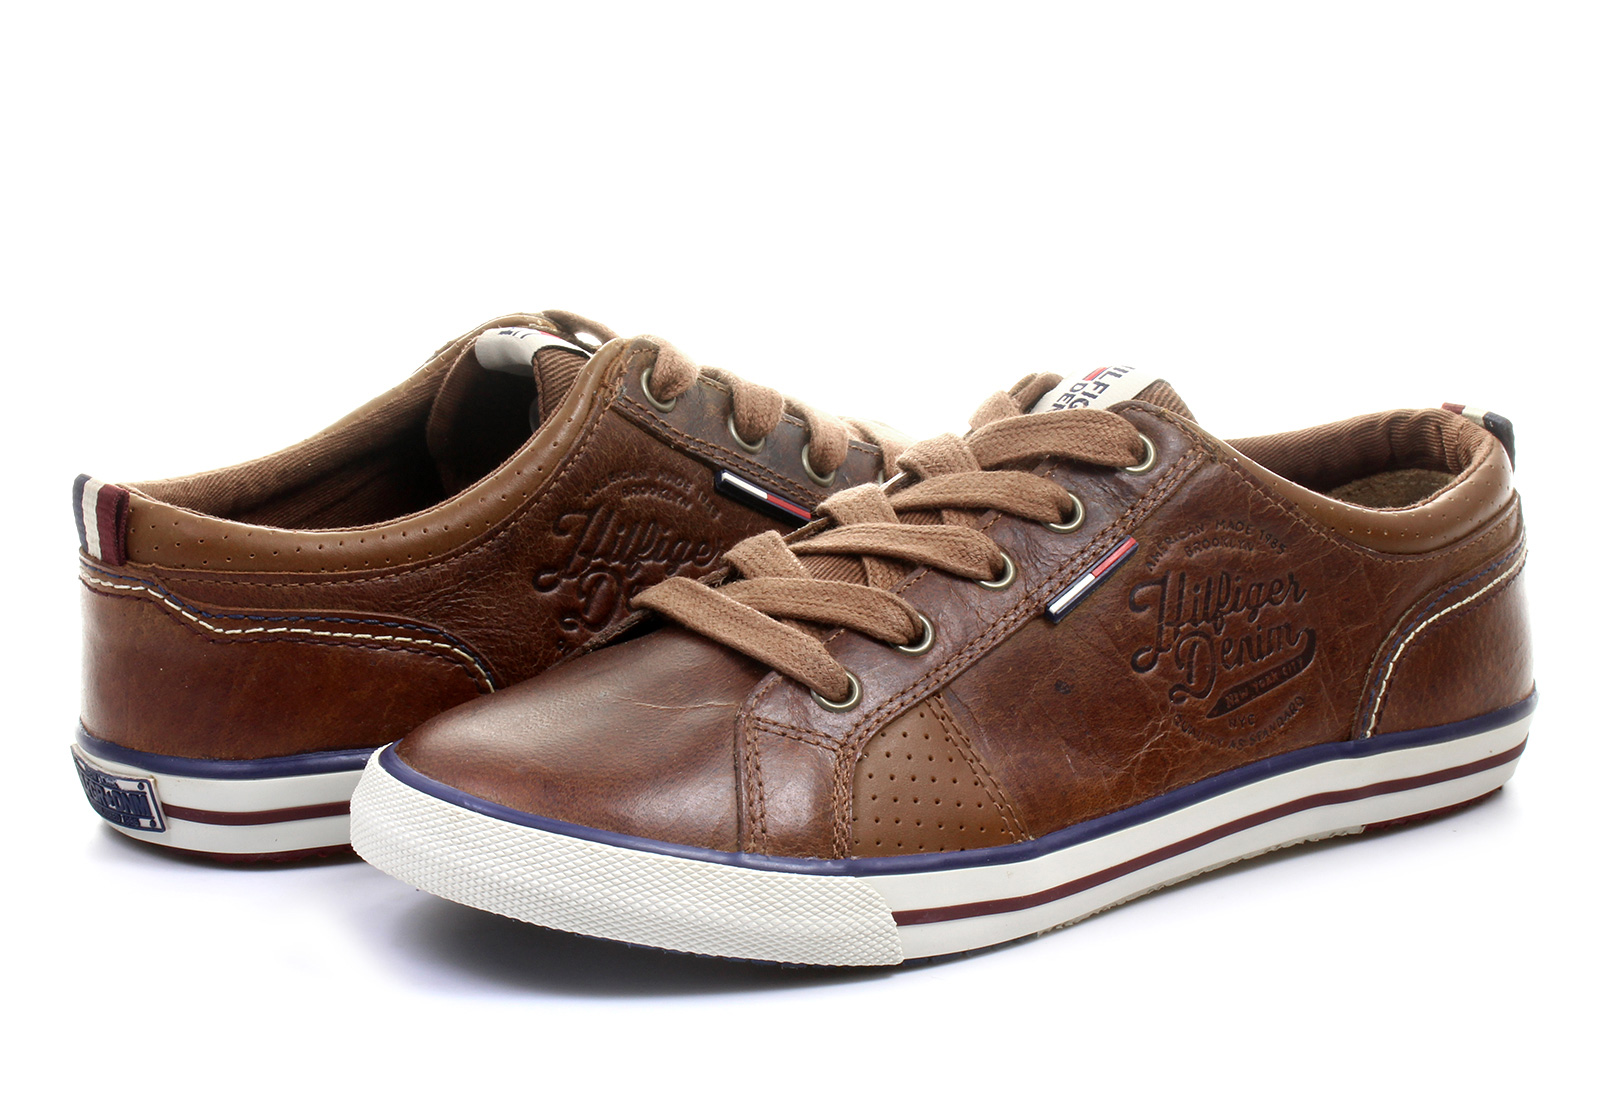 Tommy Hilfiger Shoes - Samson 11a - 14f-7856-906 - Online shop for sneakers, shoes and boots